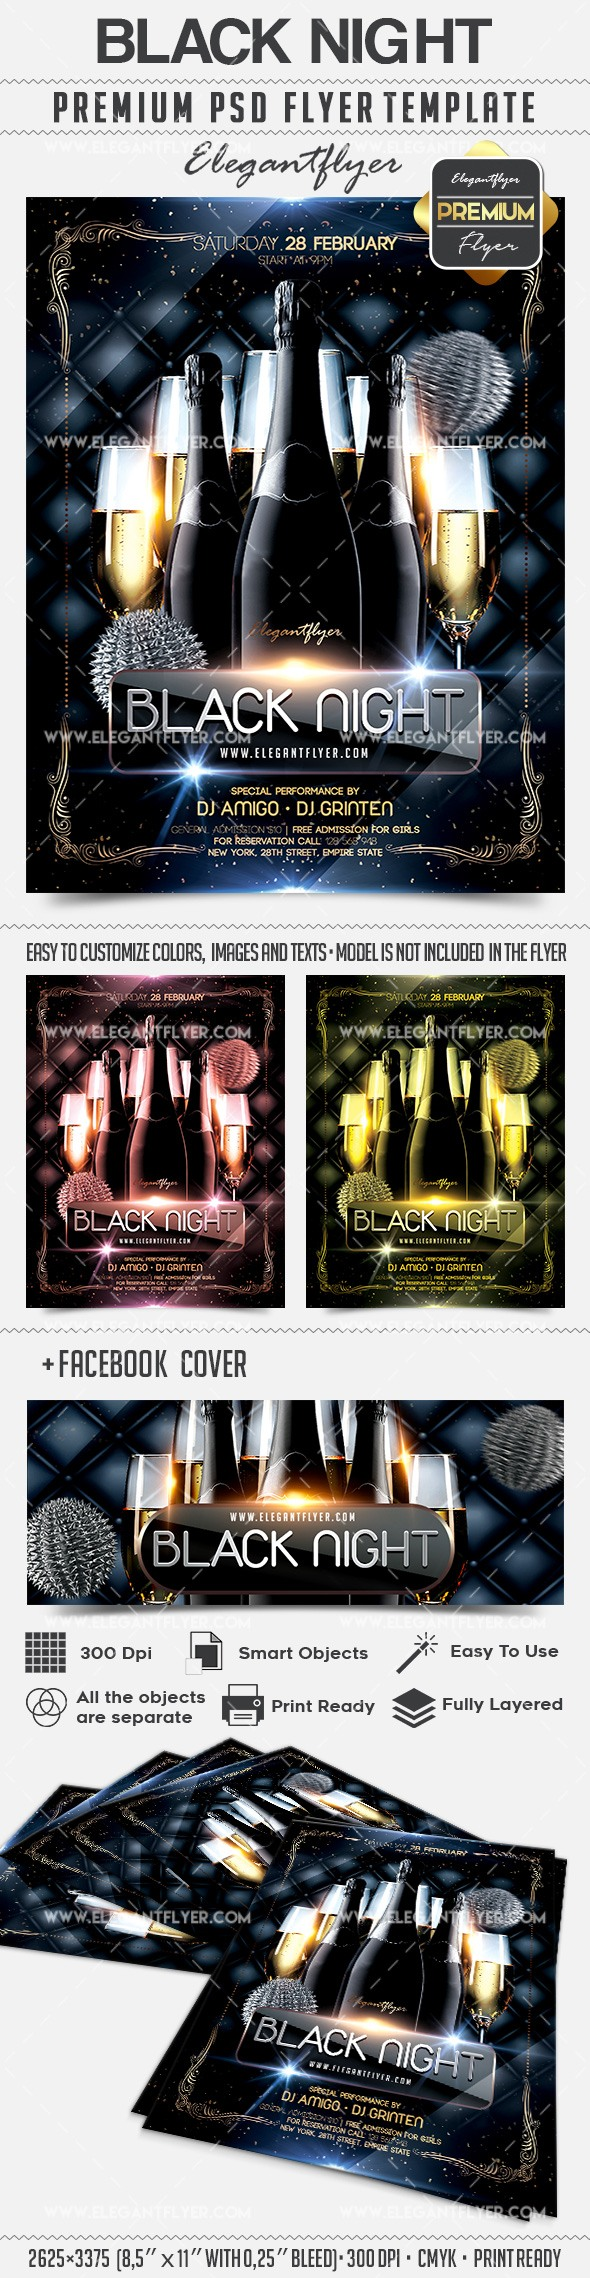 Party for Black Night Champagne